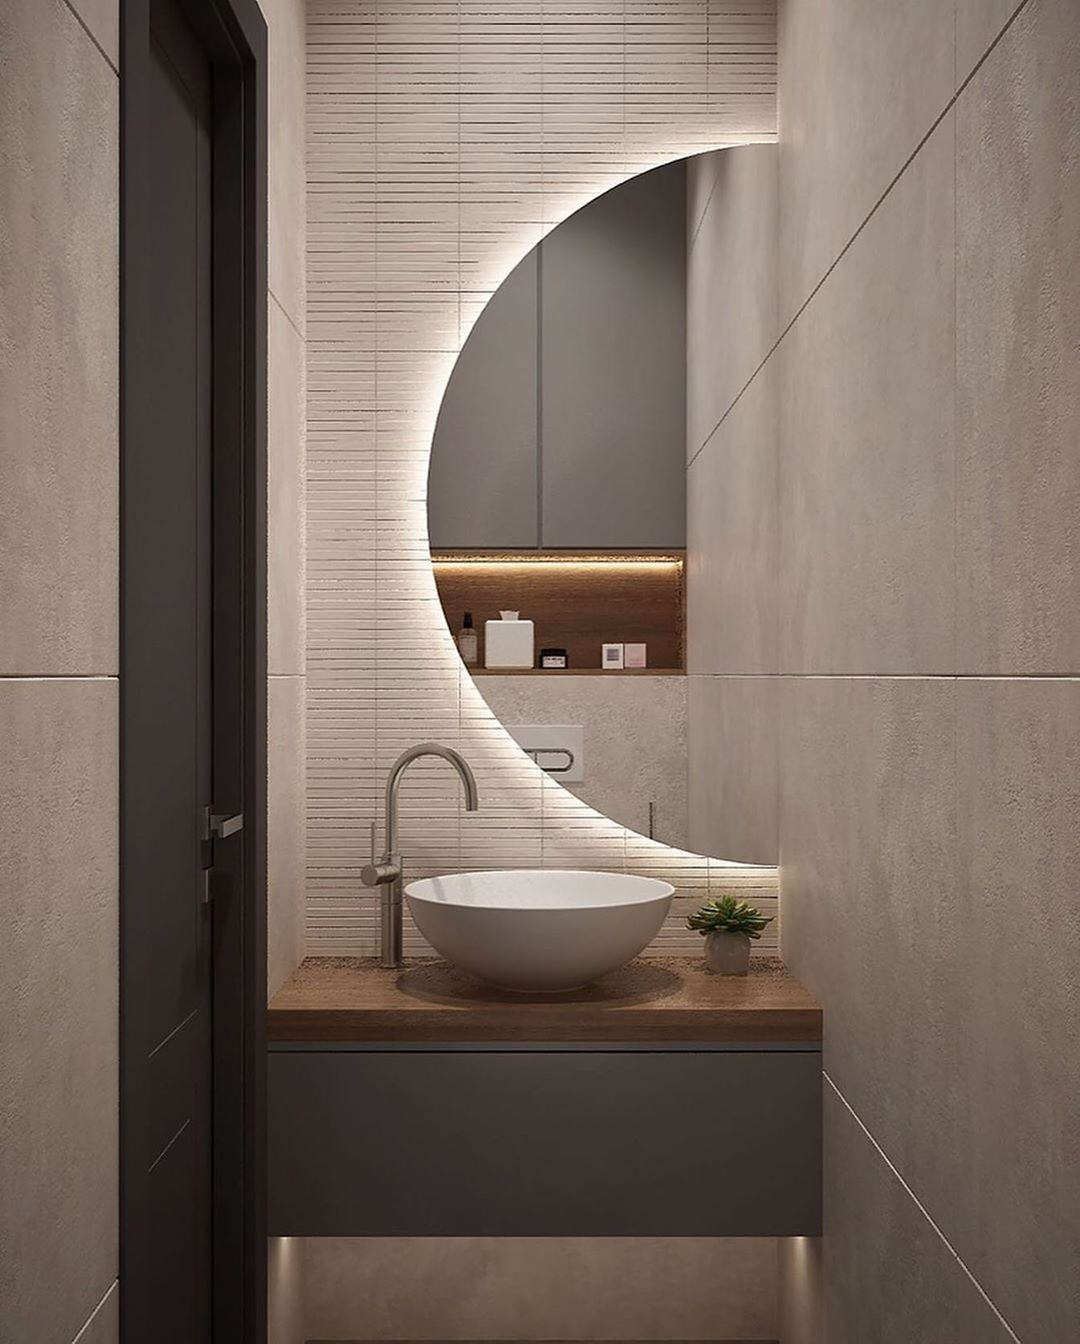 What Did You Think Of This Half Round Half Bath Beautiful Is Different Right Beaut Washroom Design Bathroom Interior Design Bathroom Design [ 1344 x 1080 Pixel ]